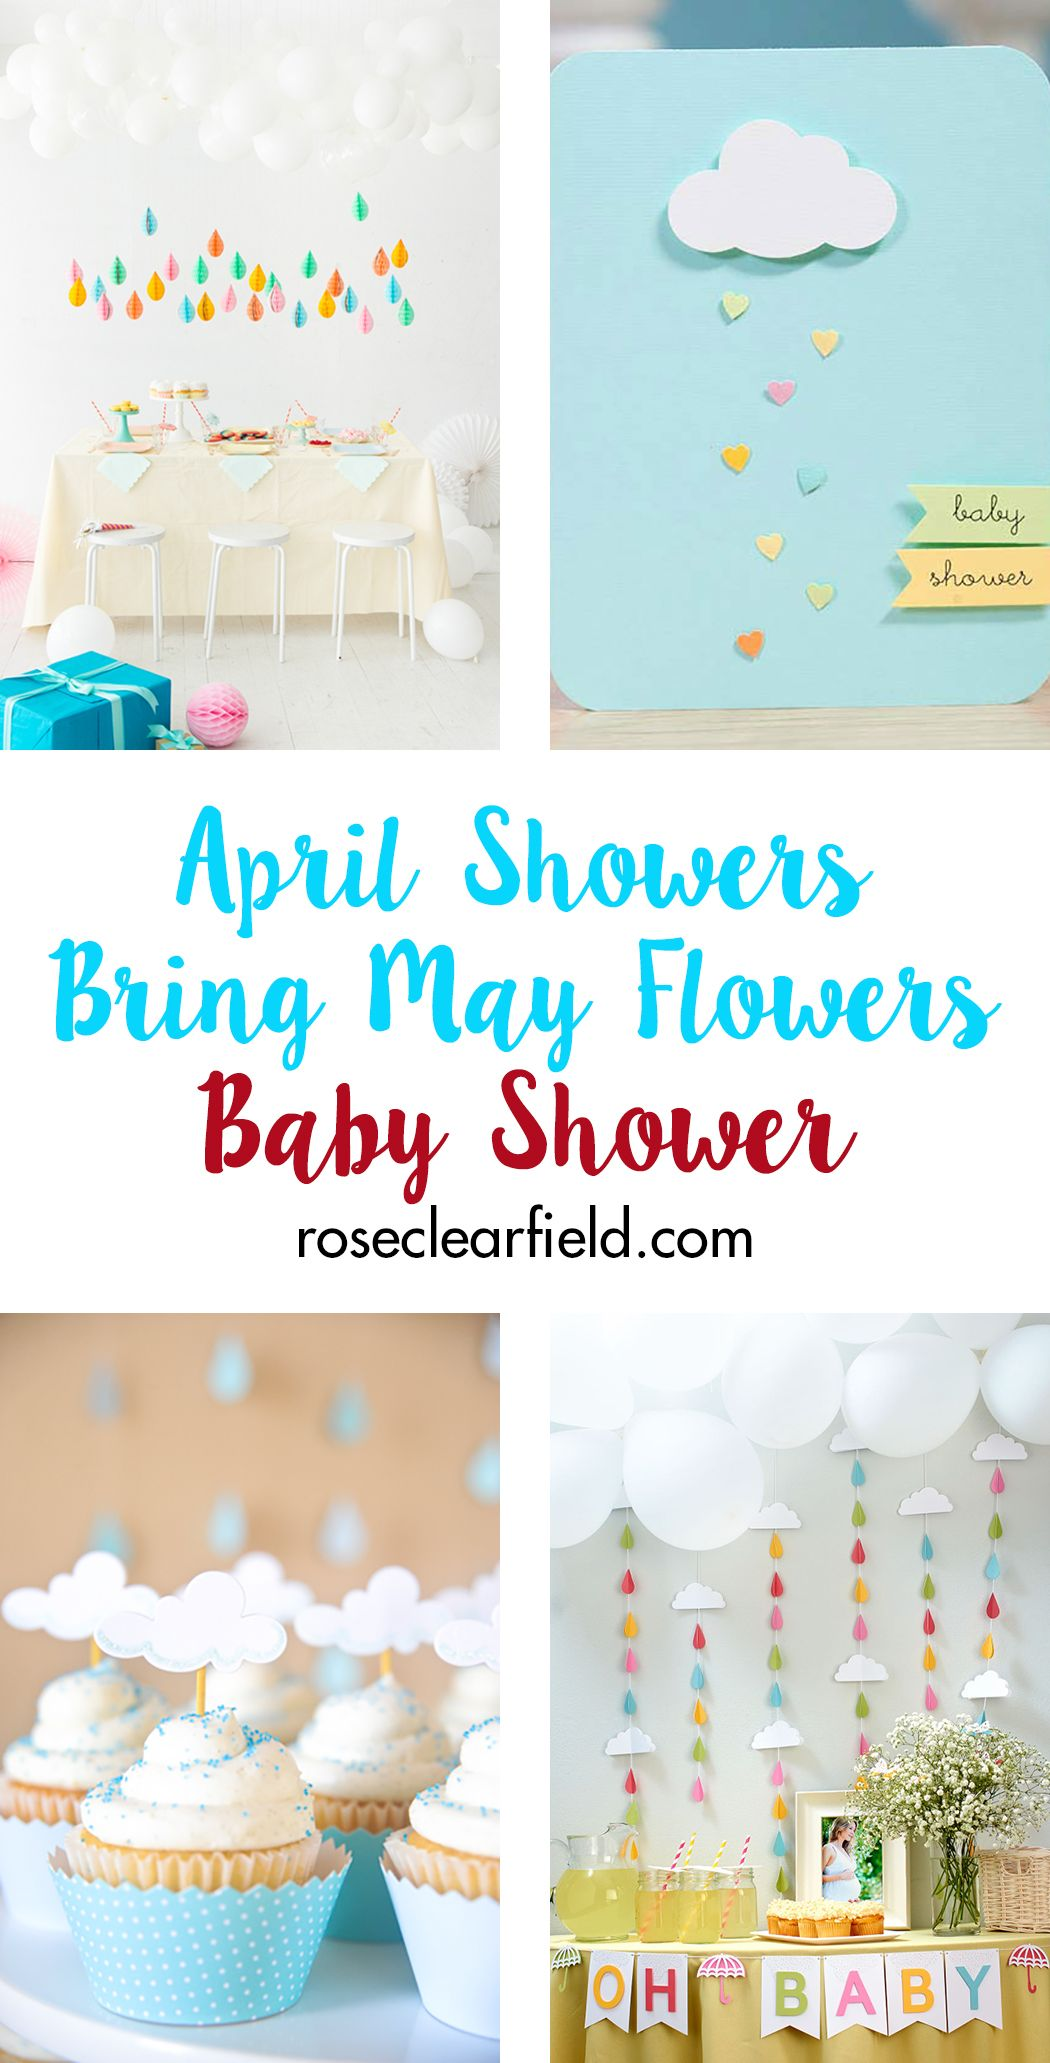 April Showers Bring May Flowers Baby Shower